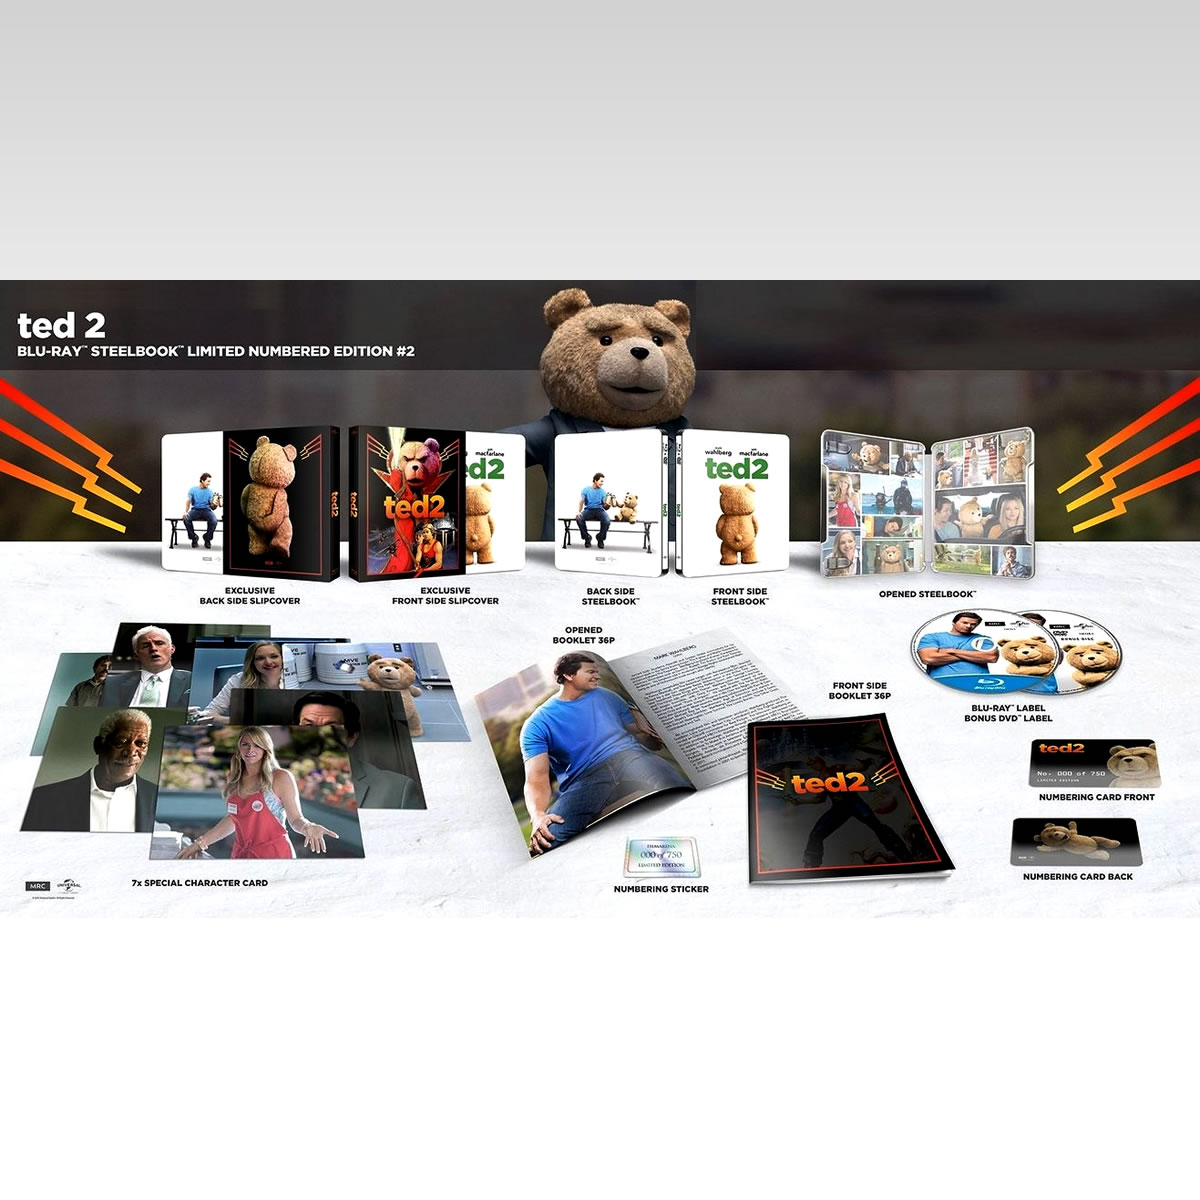 TED 2 Limited Collector's Numbered FLASH Edition Steelbook + CARDS (BLU-RAY + DVD)